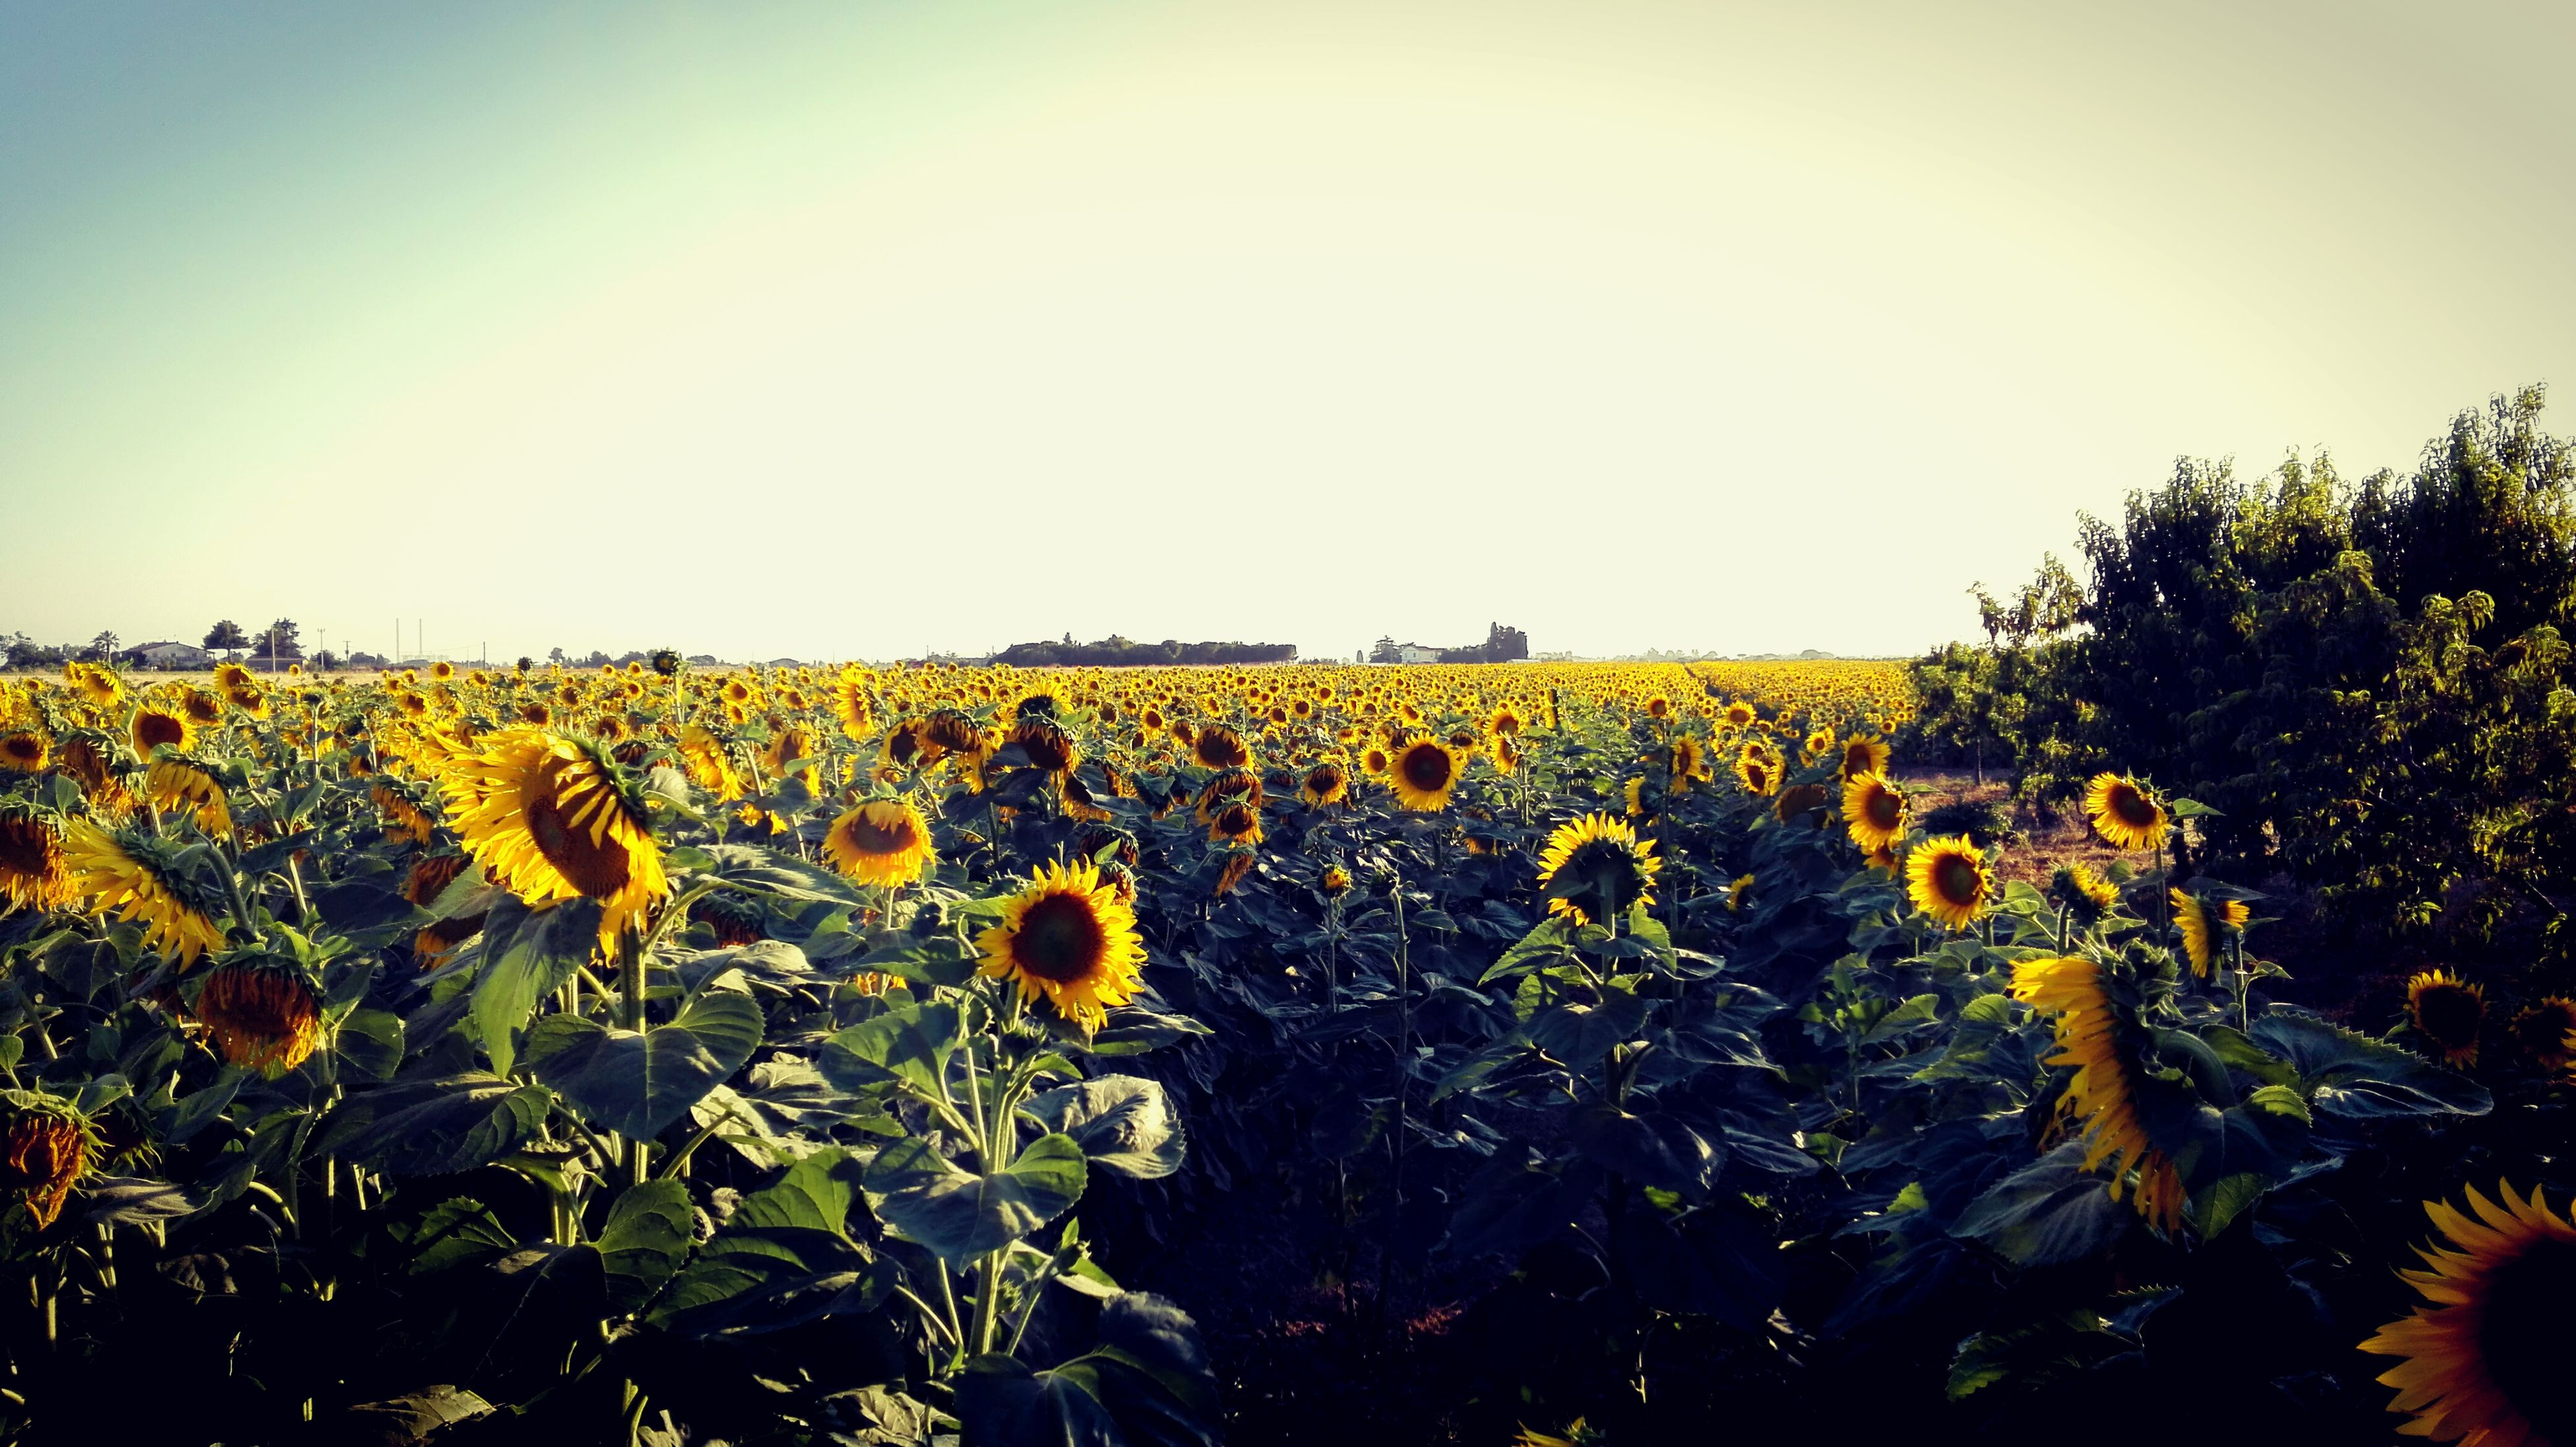 yellow, flower, sunflower, growth, field, clear sky, beauty in nature, rural scene, fragility, plant, freshness, agriculture, tranquil scene, scenics, tranquility, abundance, nature, petal, vibrant color, blossom, in bloom, flower head, majestic, sky, farm, sunbeam, growing, springtime, cultivated land, no people, blooming